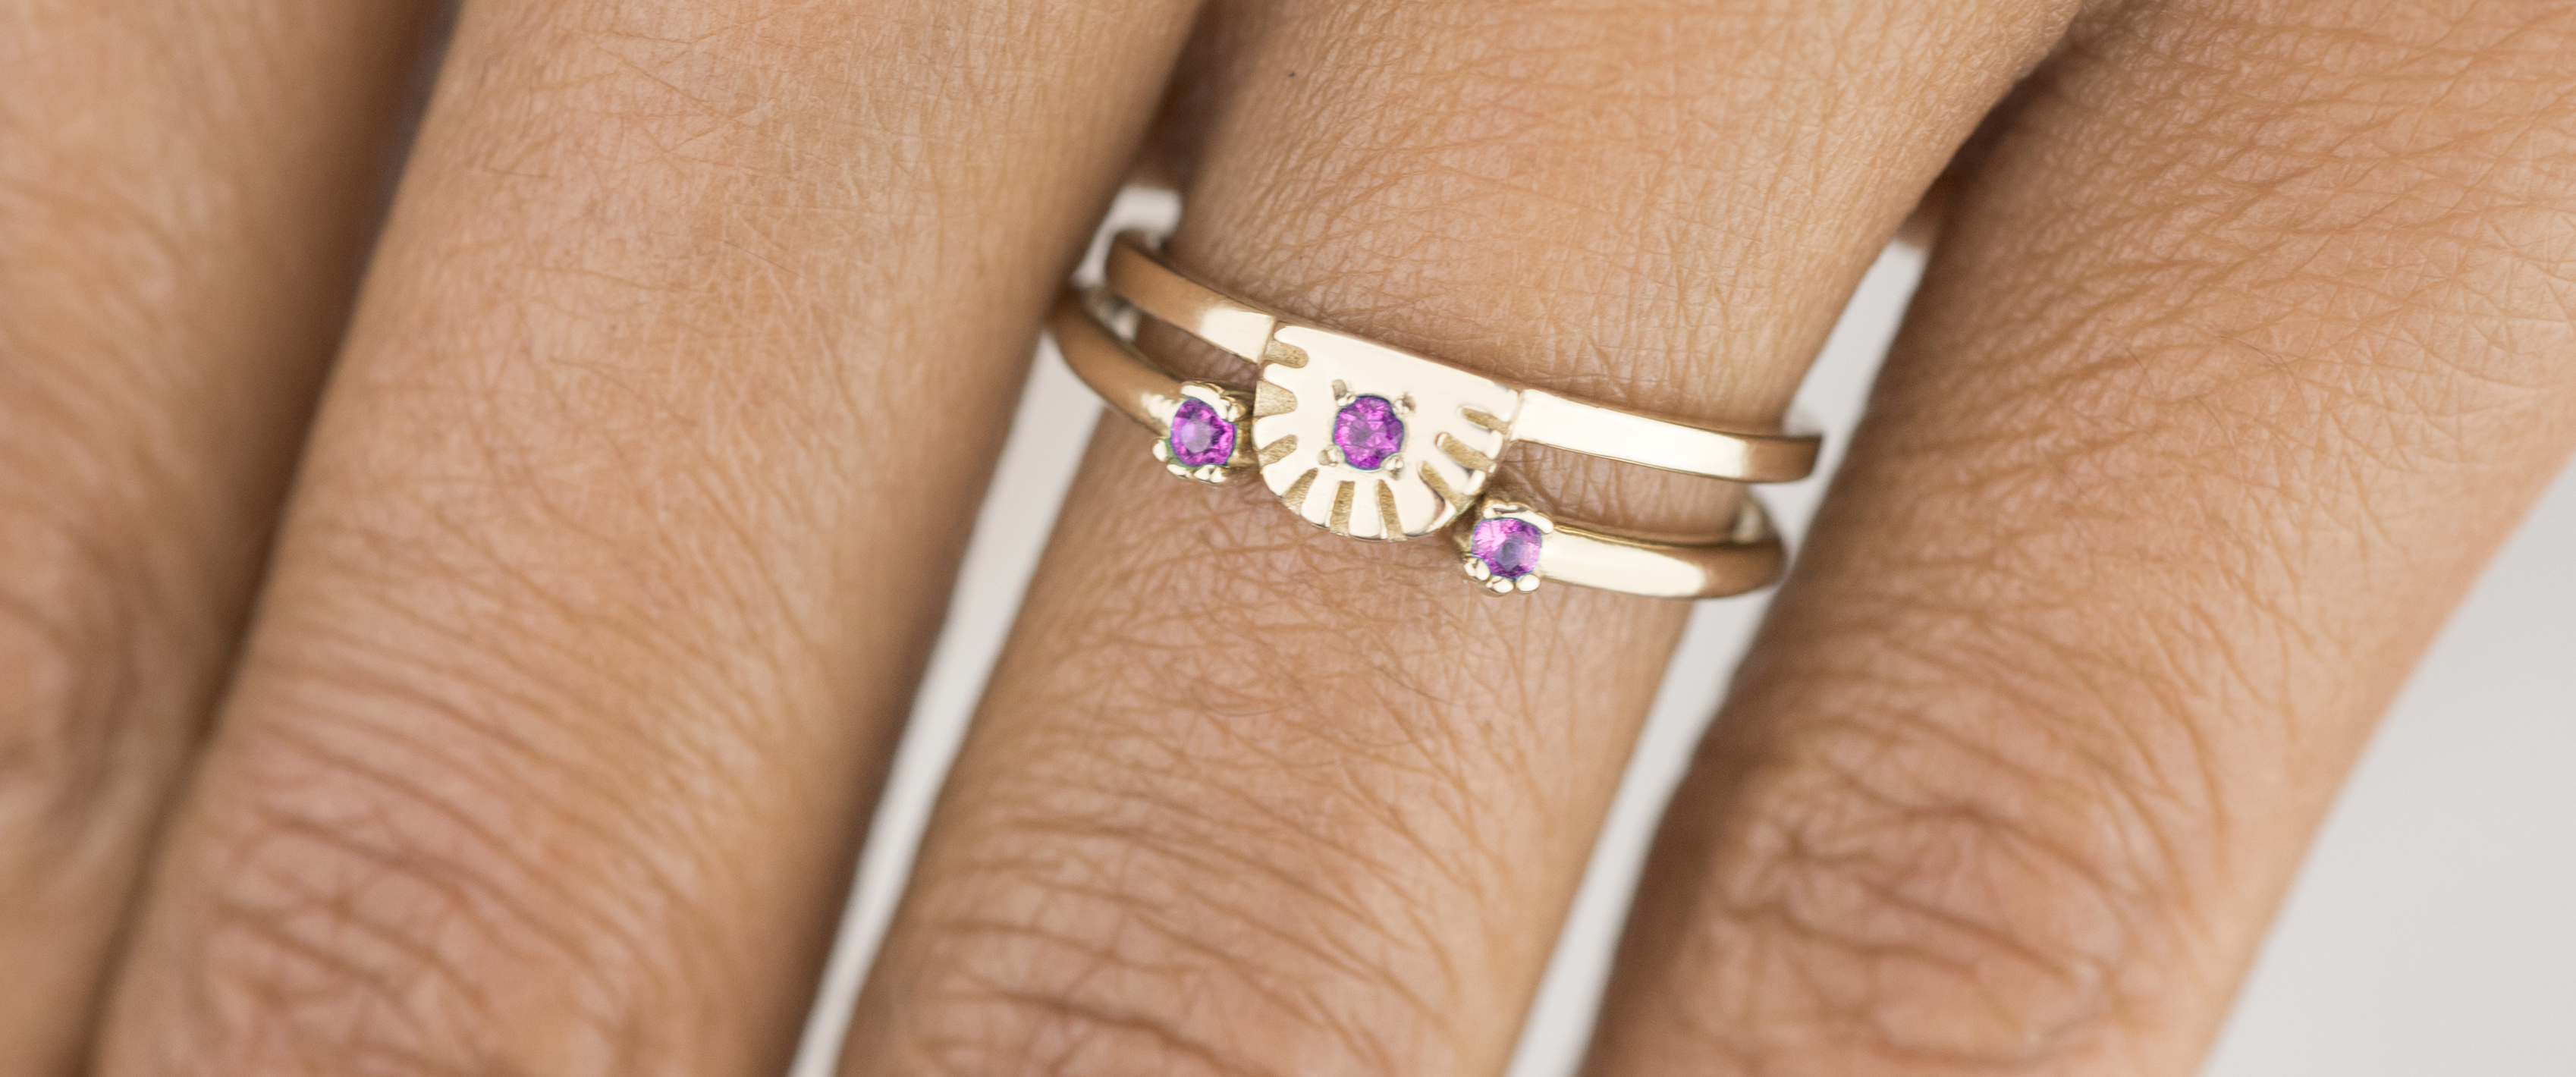 Fuschia Stackable Rings from Bario Neal's Vibrant Collection